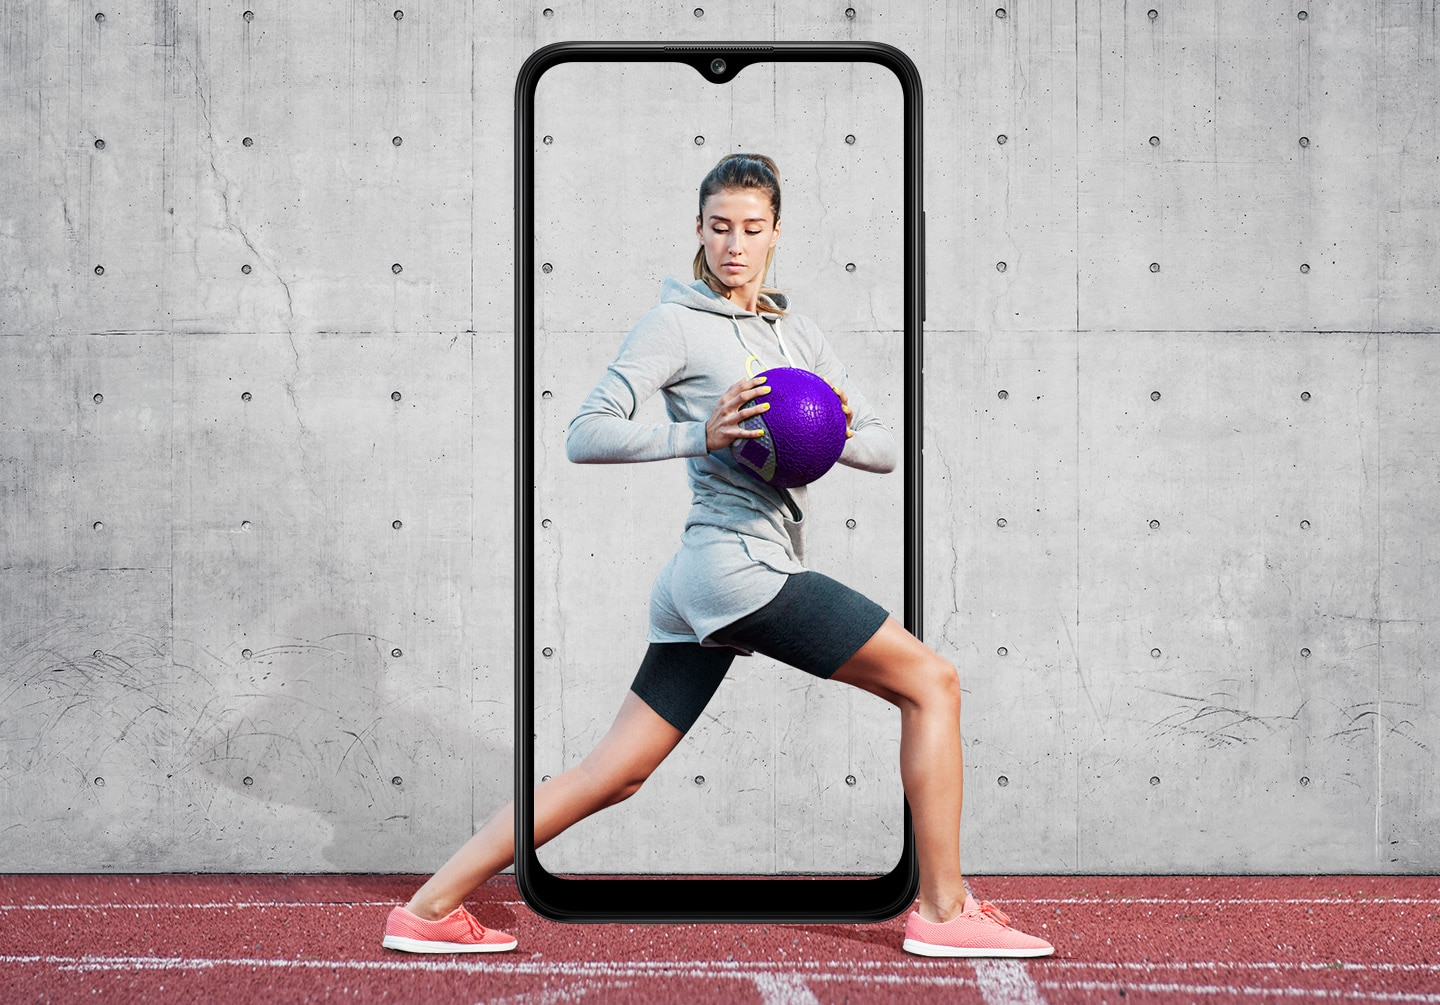 A woman is shown performing a standing torso twist with her legs in a lunge position while holding a purple medicine ball. The Galaxy A03s's slim bezel frames her entire body, with her feet and part of her calf outside it.